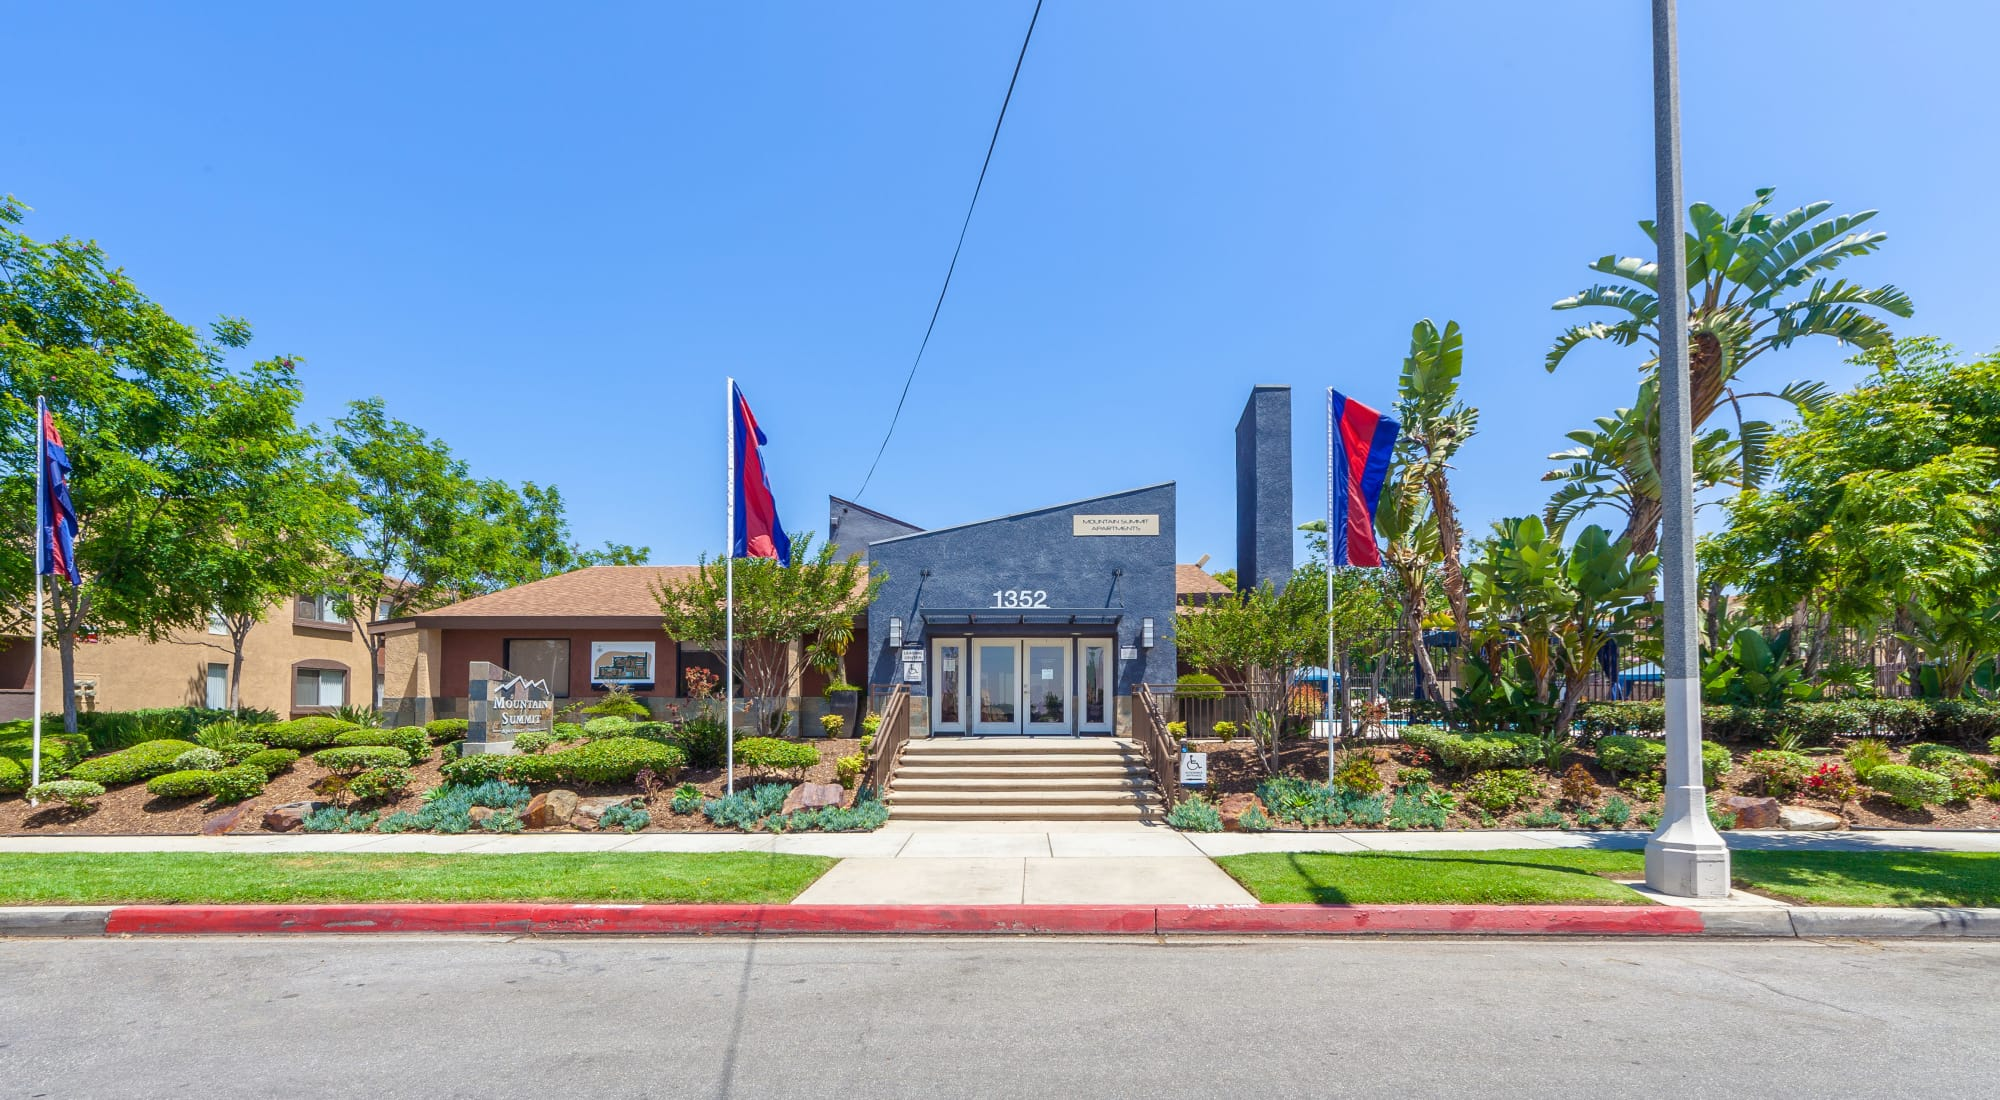 Contact us at West Fifth Apartments in Ontario, California